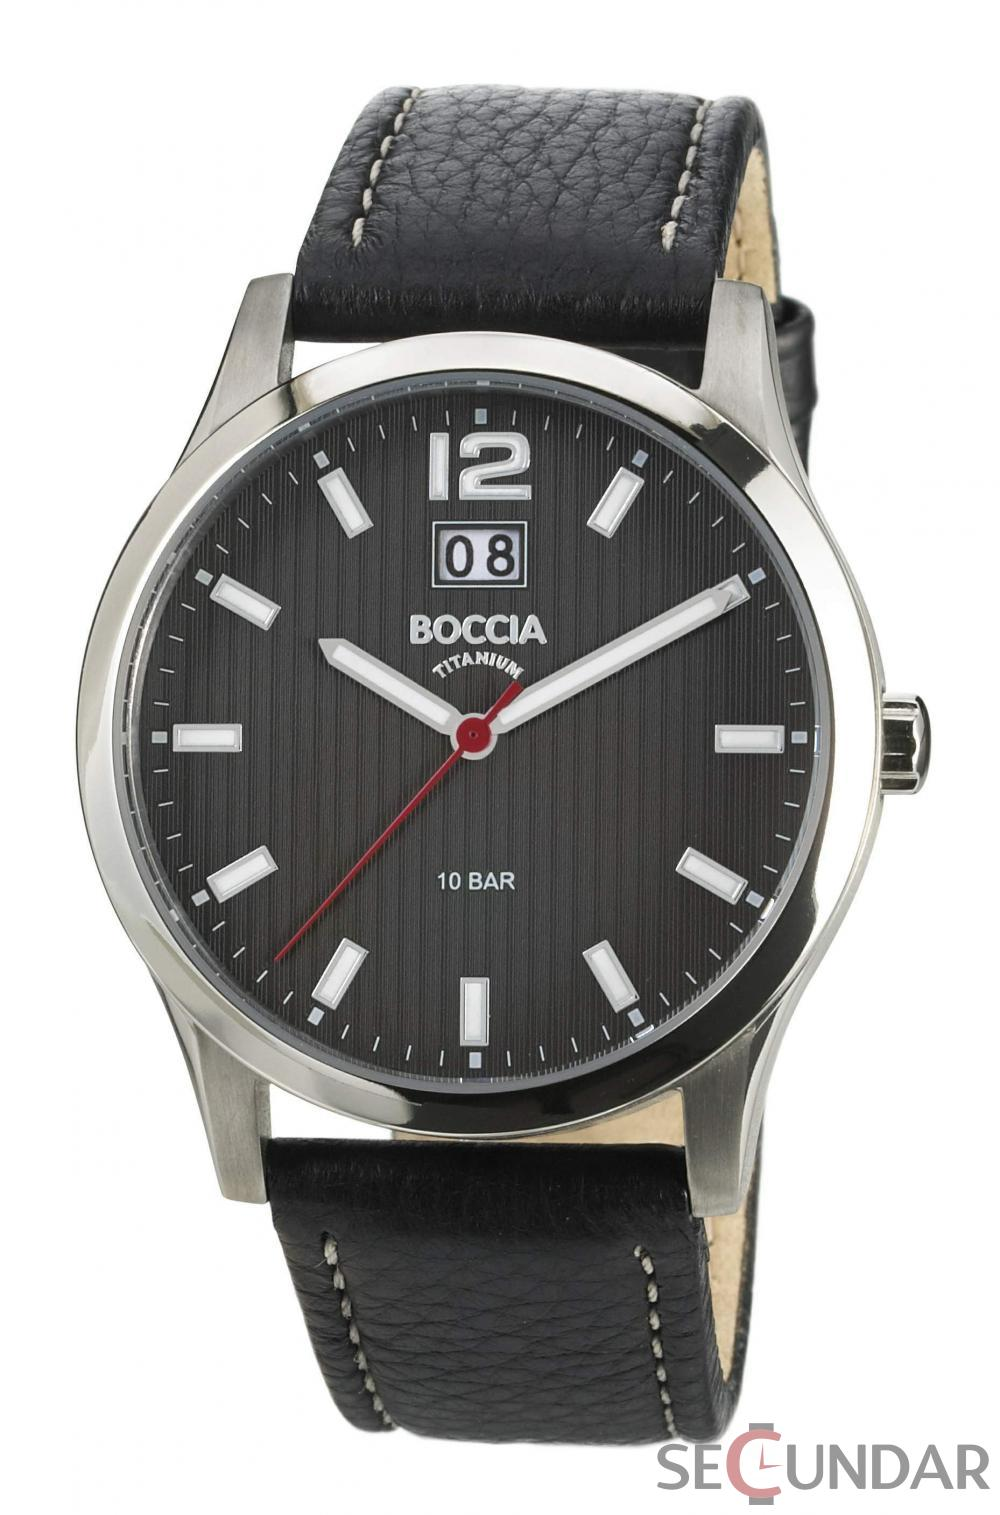 Ceas Boccia TITANIUM 3580-01 Black Leather Barbatesc de Mana Original